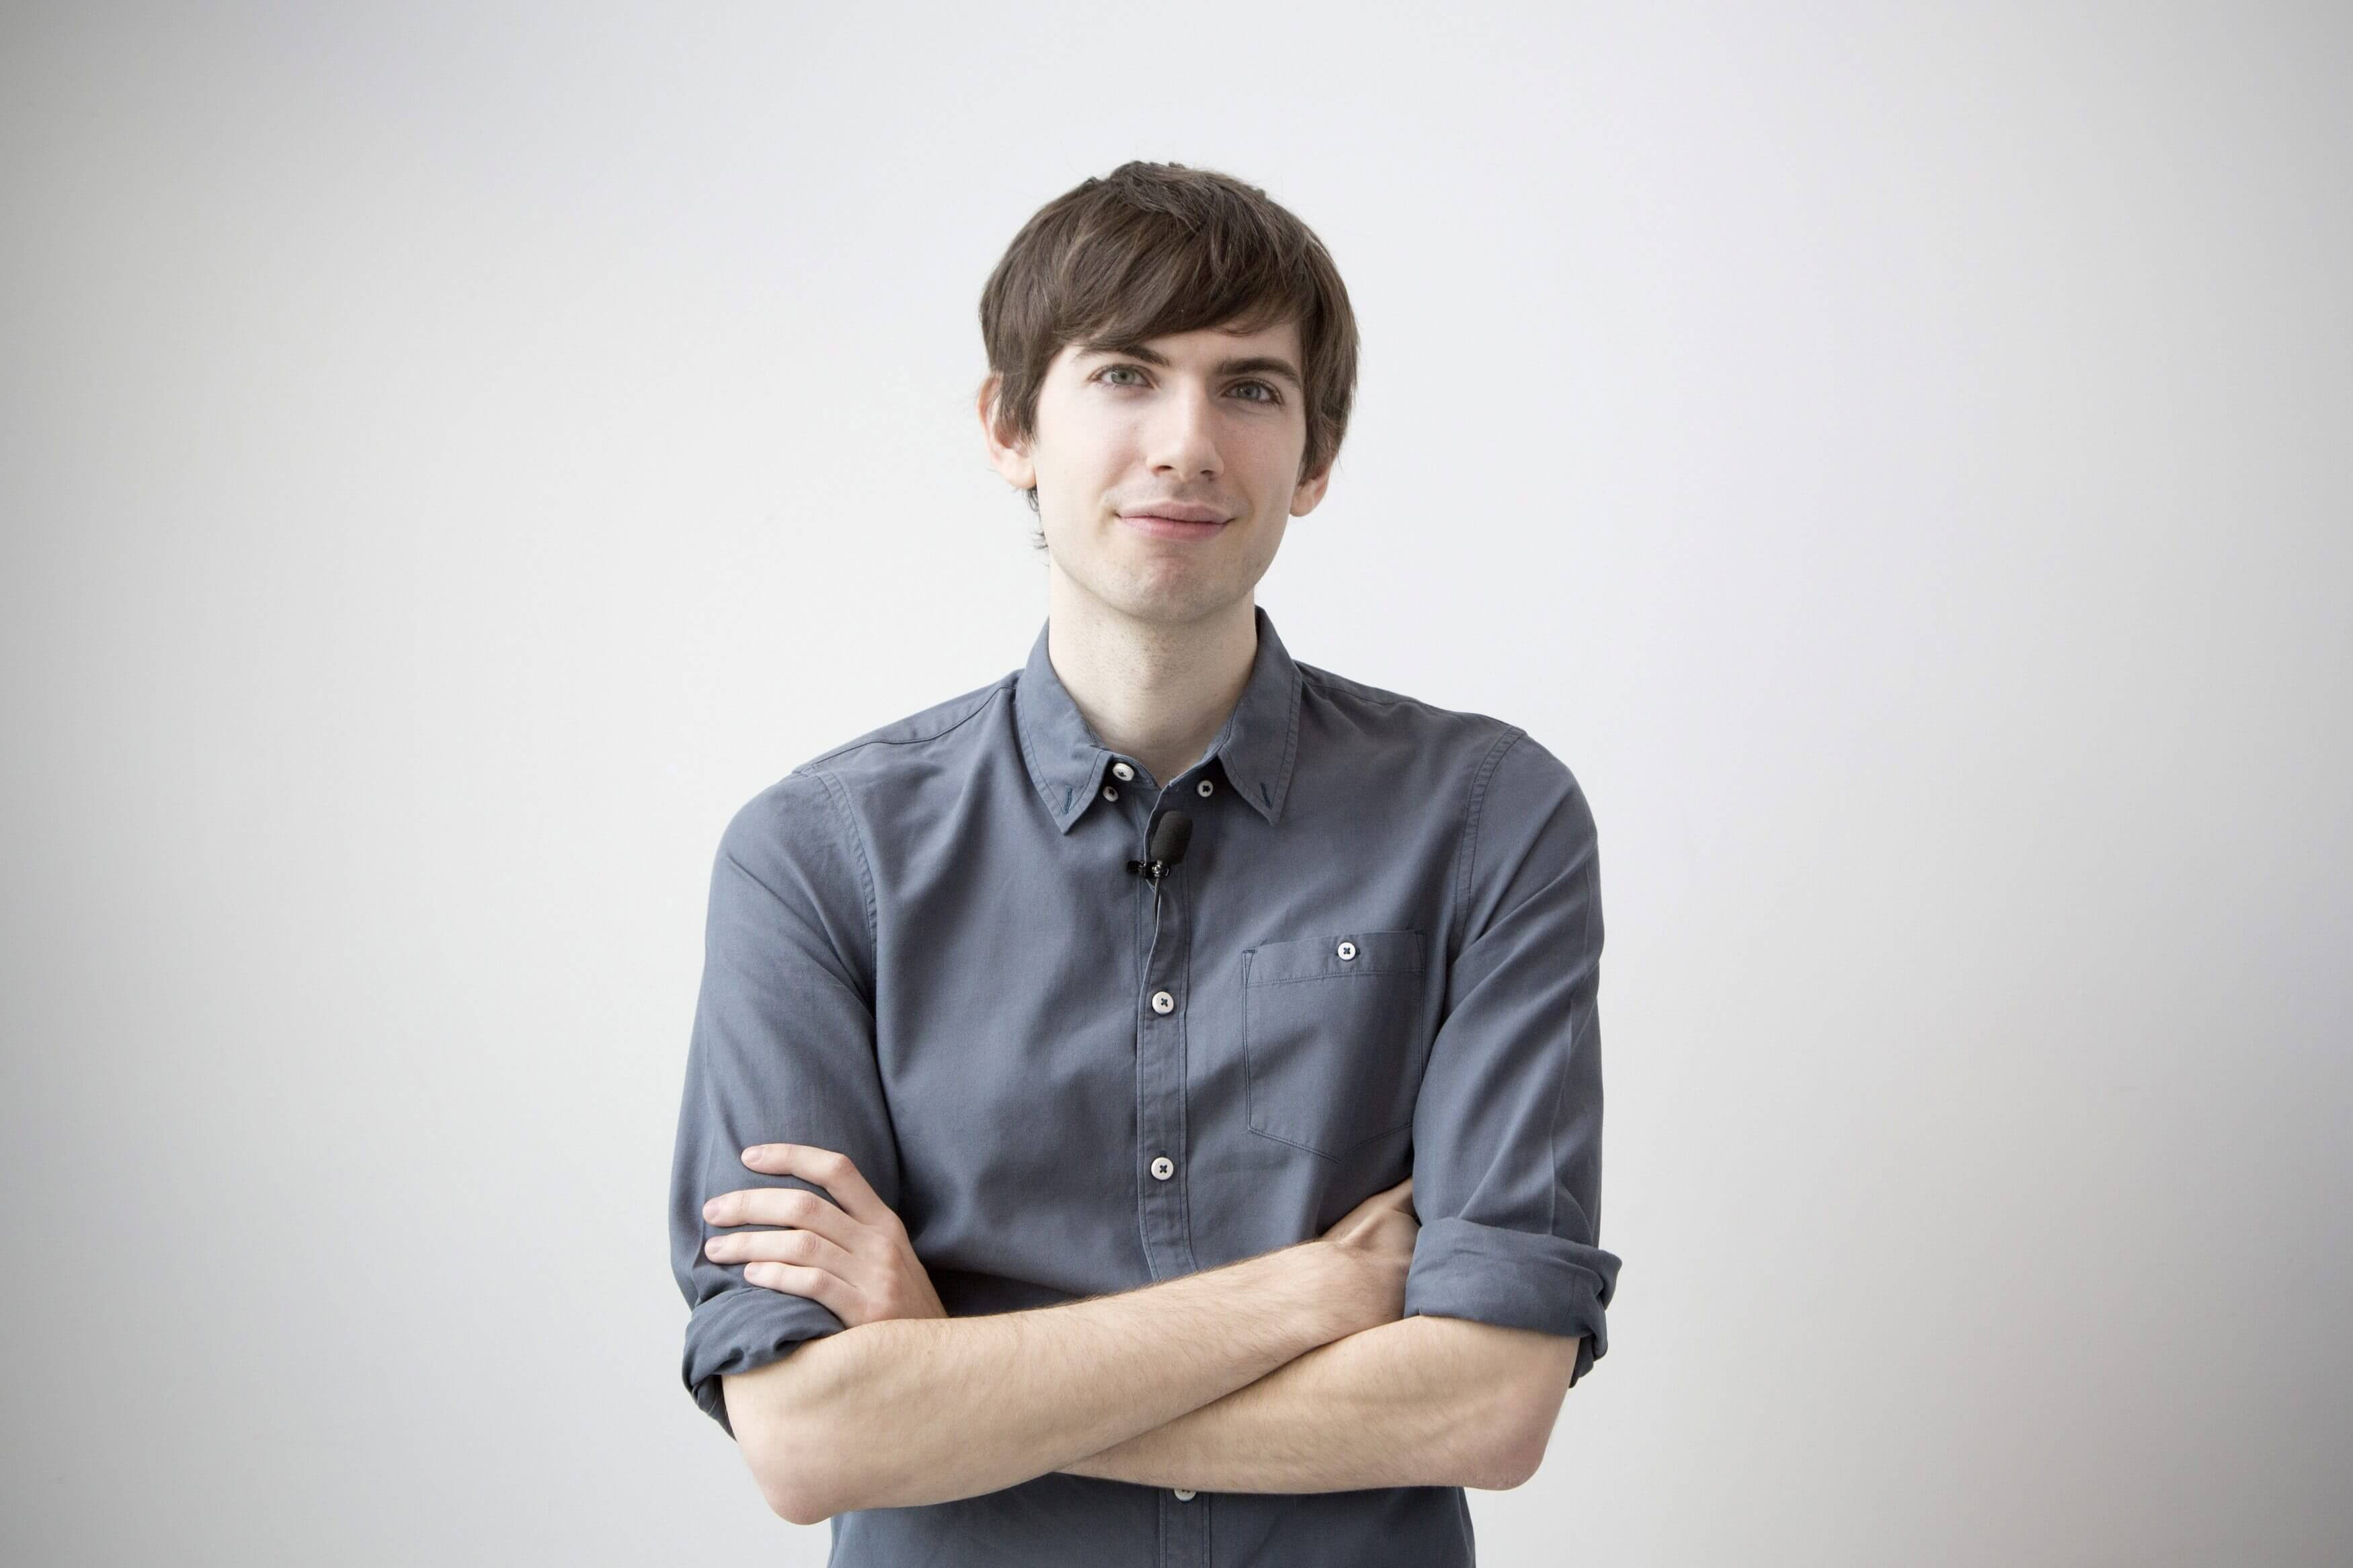 #8 David Karp | Youngest Digital Multi-Millionaires | Image Source: franceinfo.fr